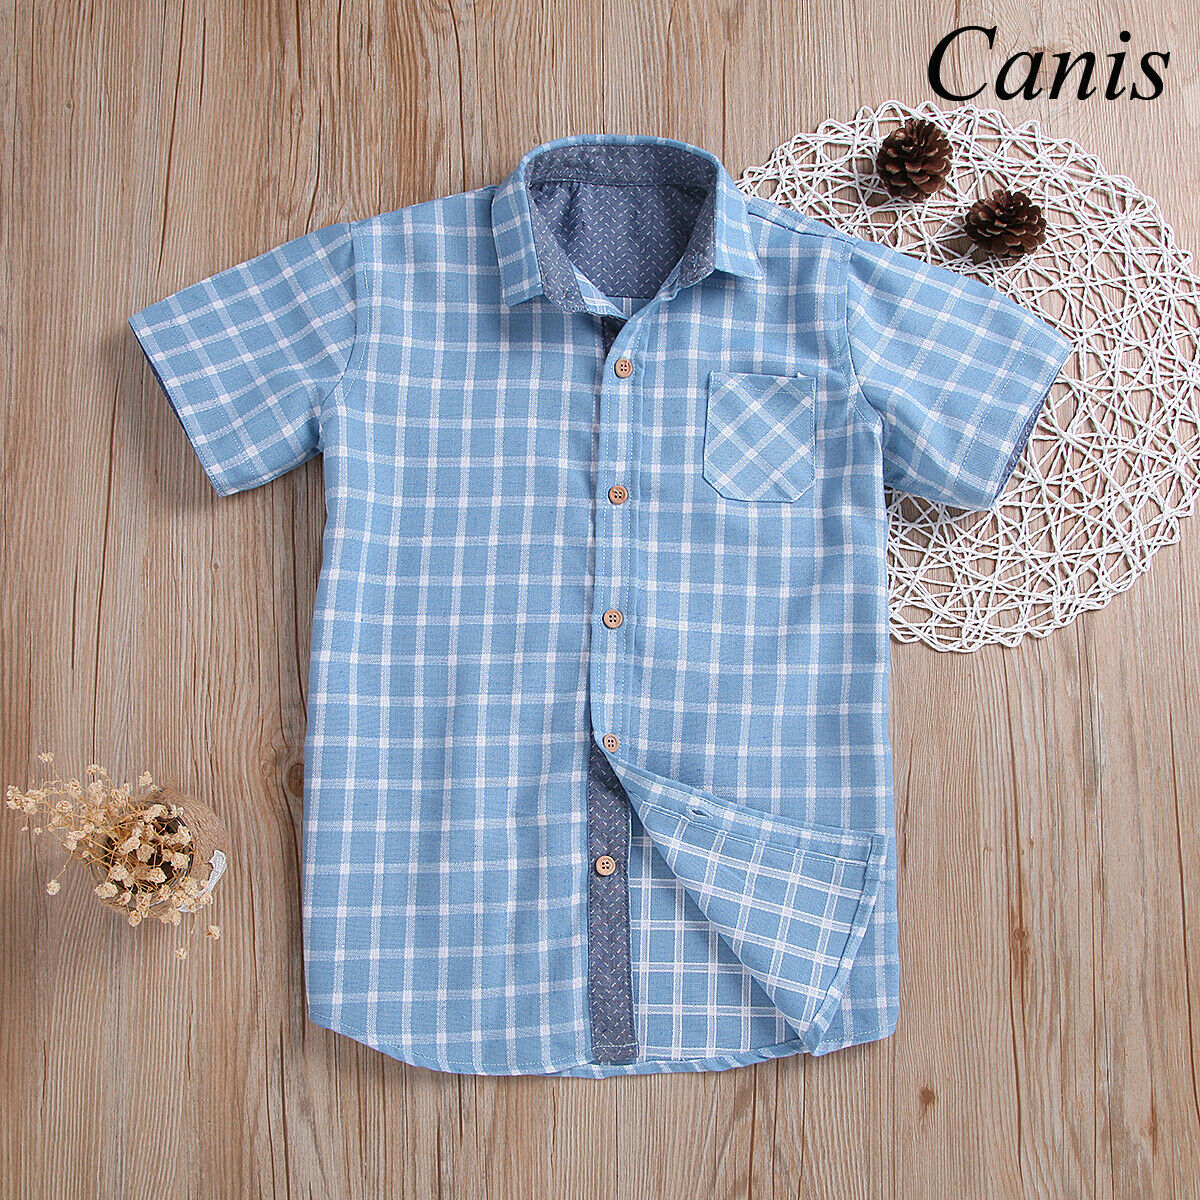 Toddler Kids Baby Boy Plaid Cotton Tops Shirt Casual Clothes SummerToddler Kids Baby Boy Plaid Cotton Tops Shirt Casual Clothes Summer